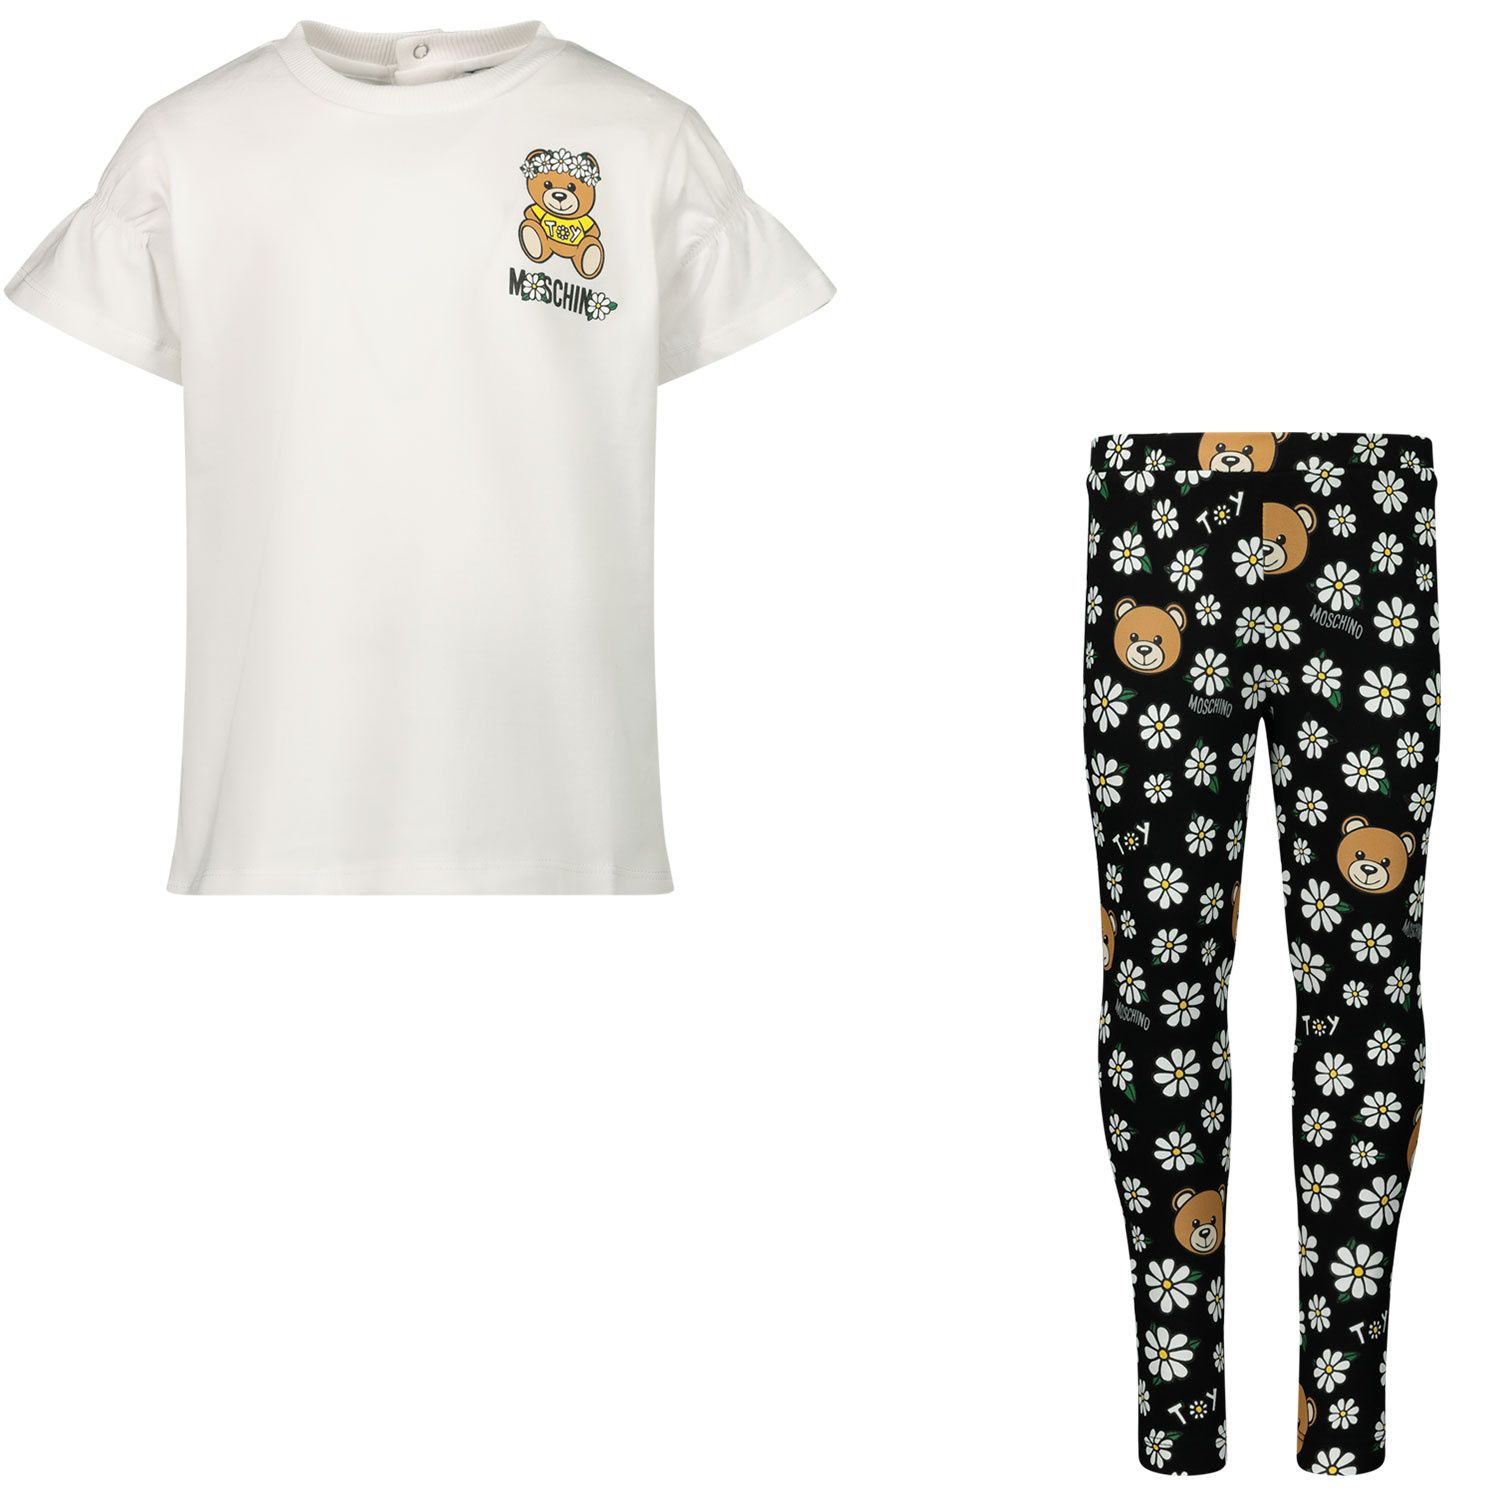 Picture of Moschino MDG00D baby set black